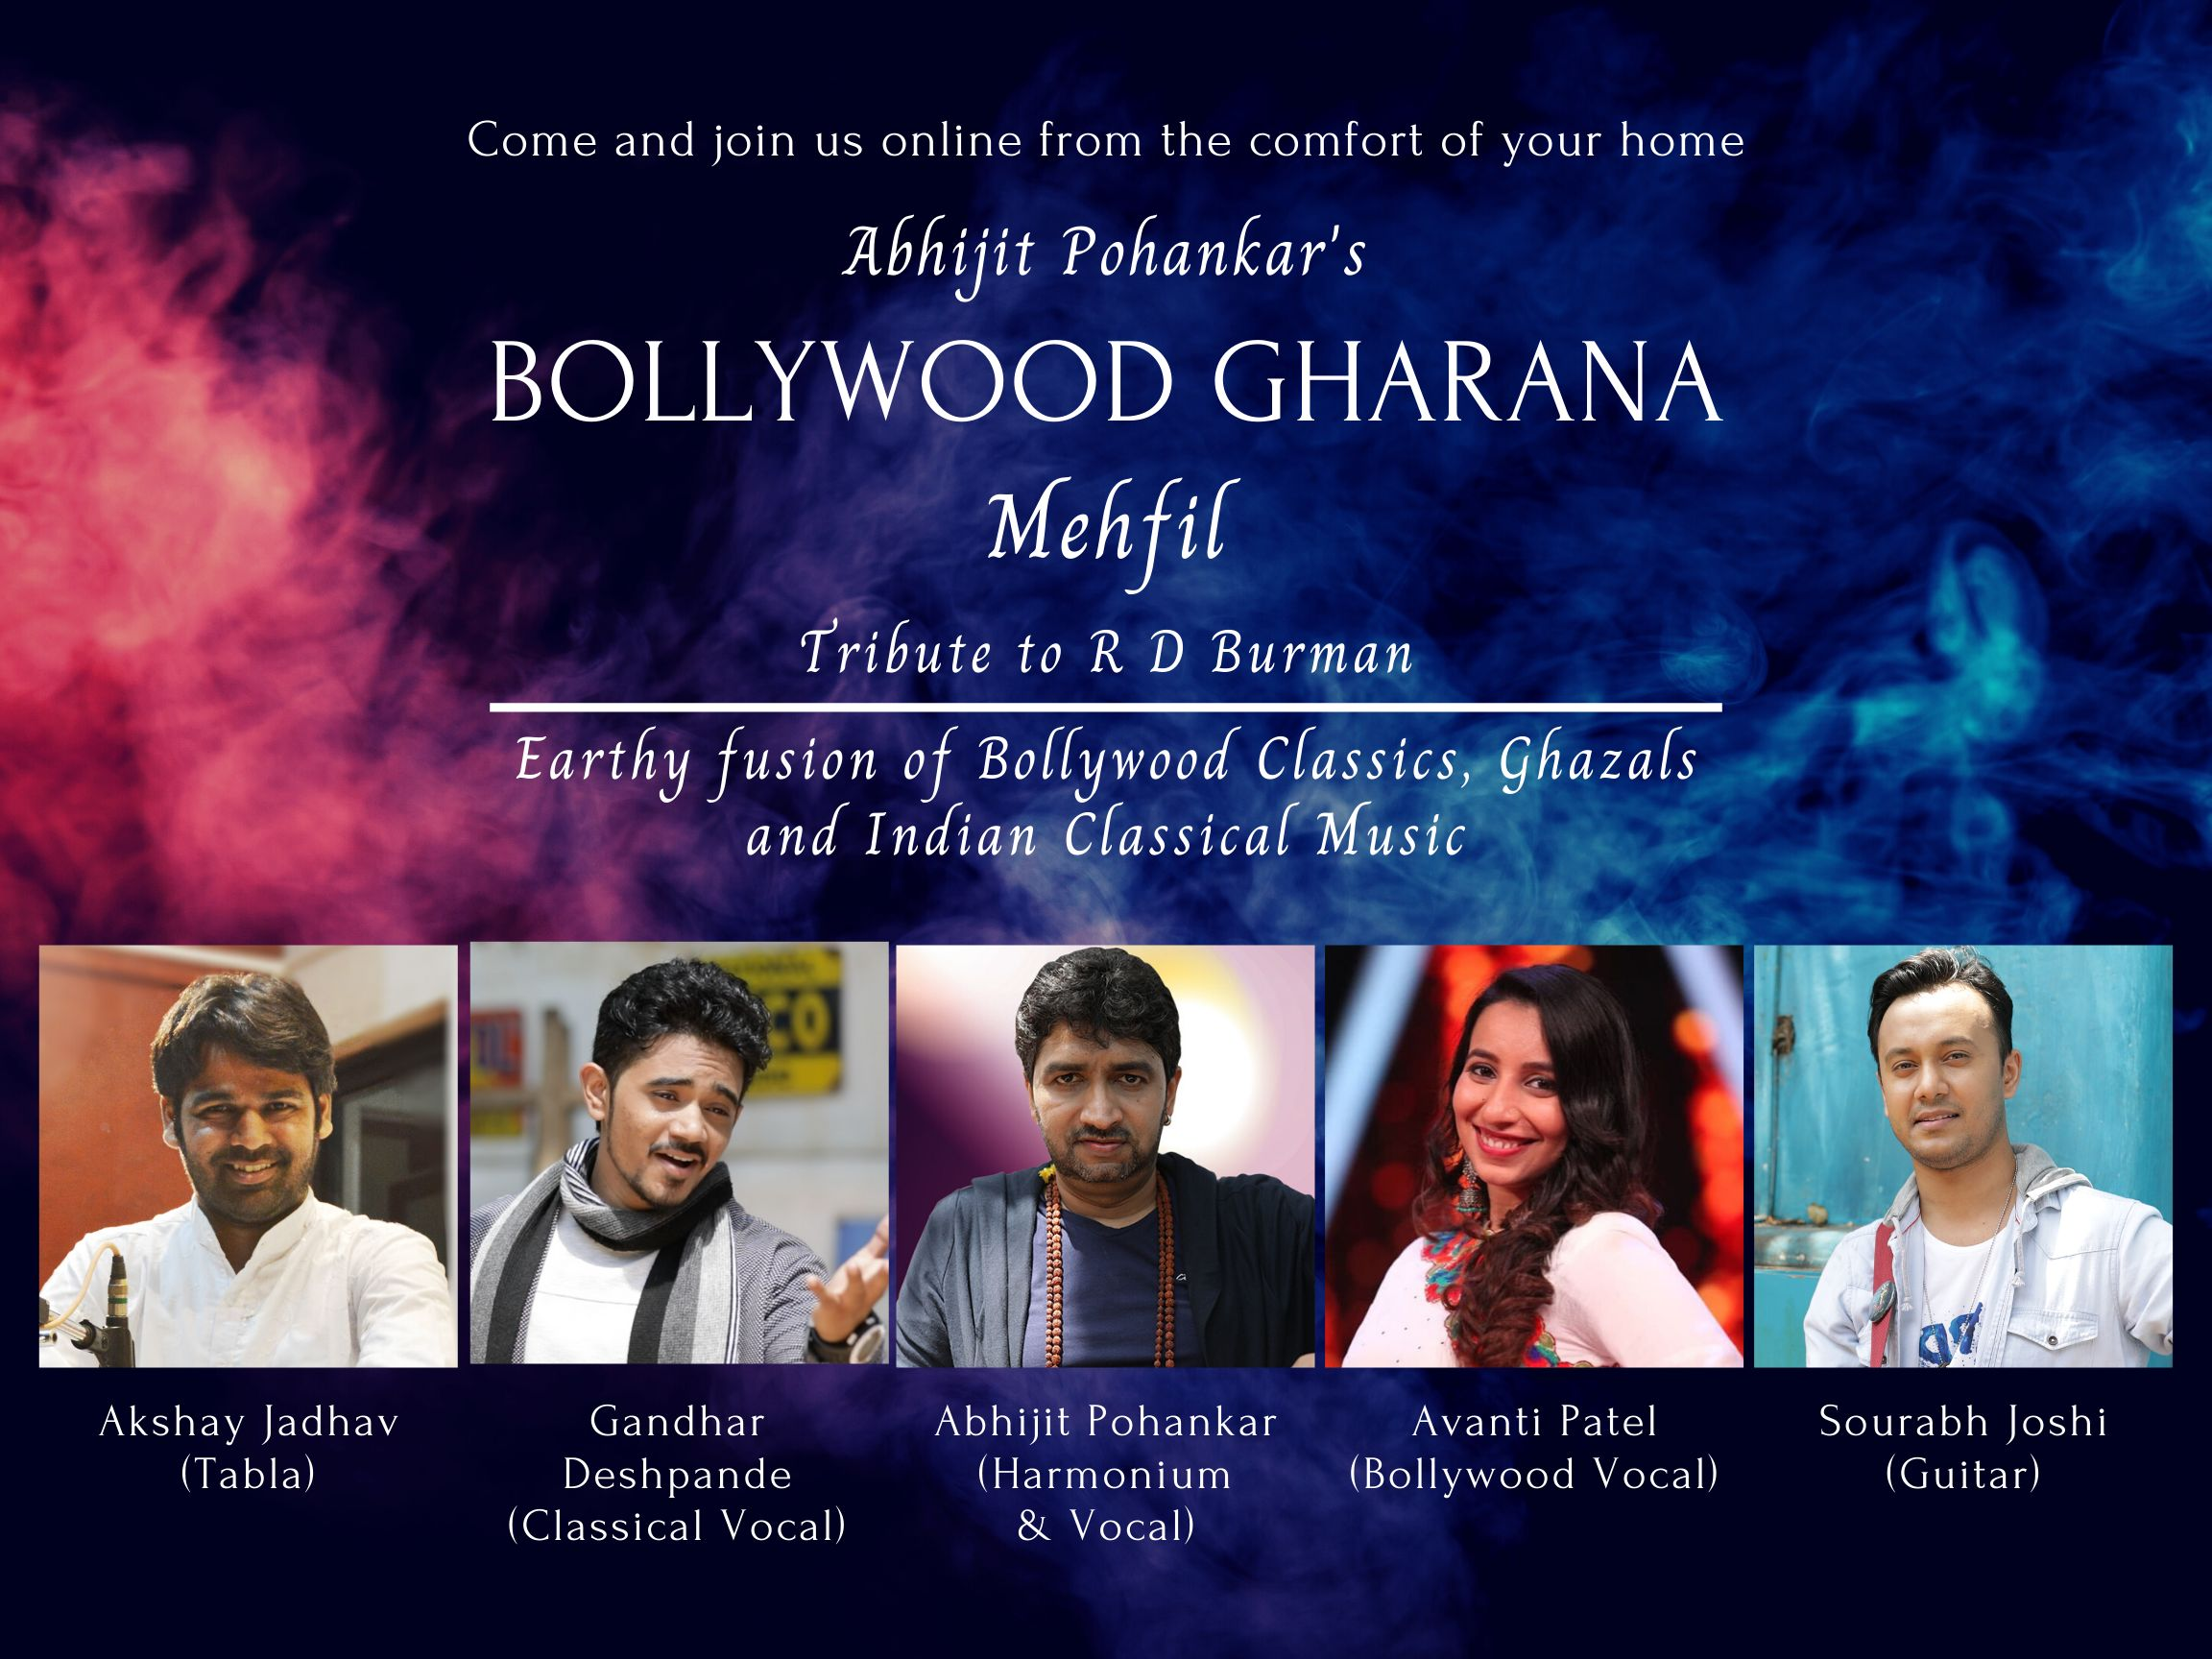 Bollywood Gharana Mehfil - Tribute to R D Burman - From the comfort of your home - Saturday, July 11, 2020 at 8pm EST